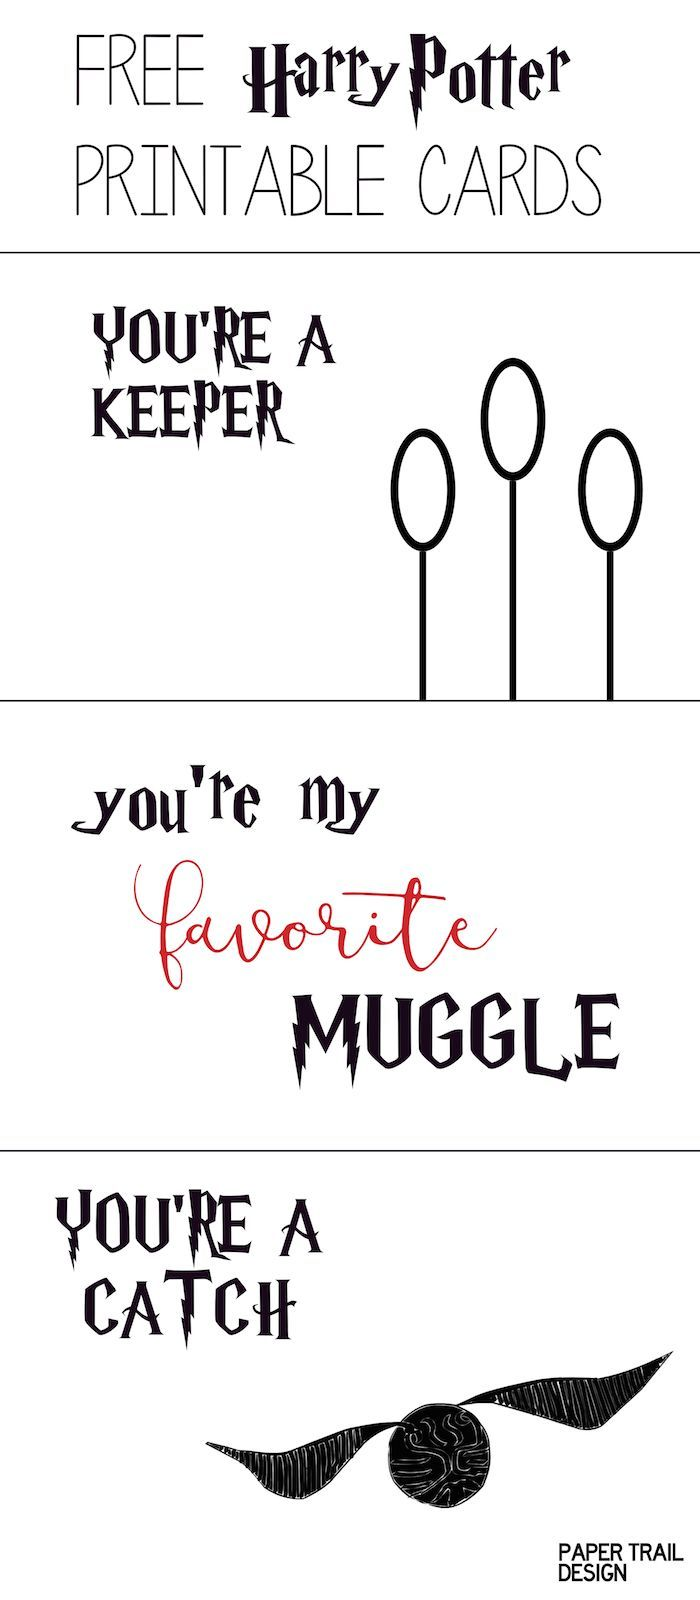 free printable harry potter cards for valentines anniversaries special occasion or whatever youre a catch keeper and youre my favorite muggle